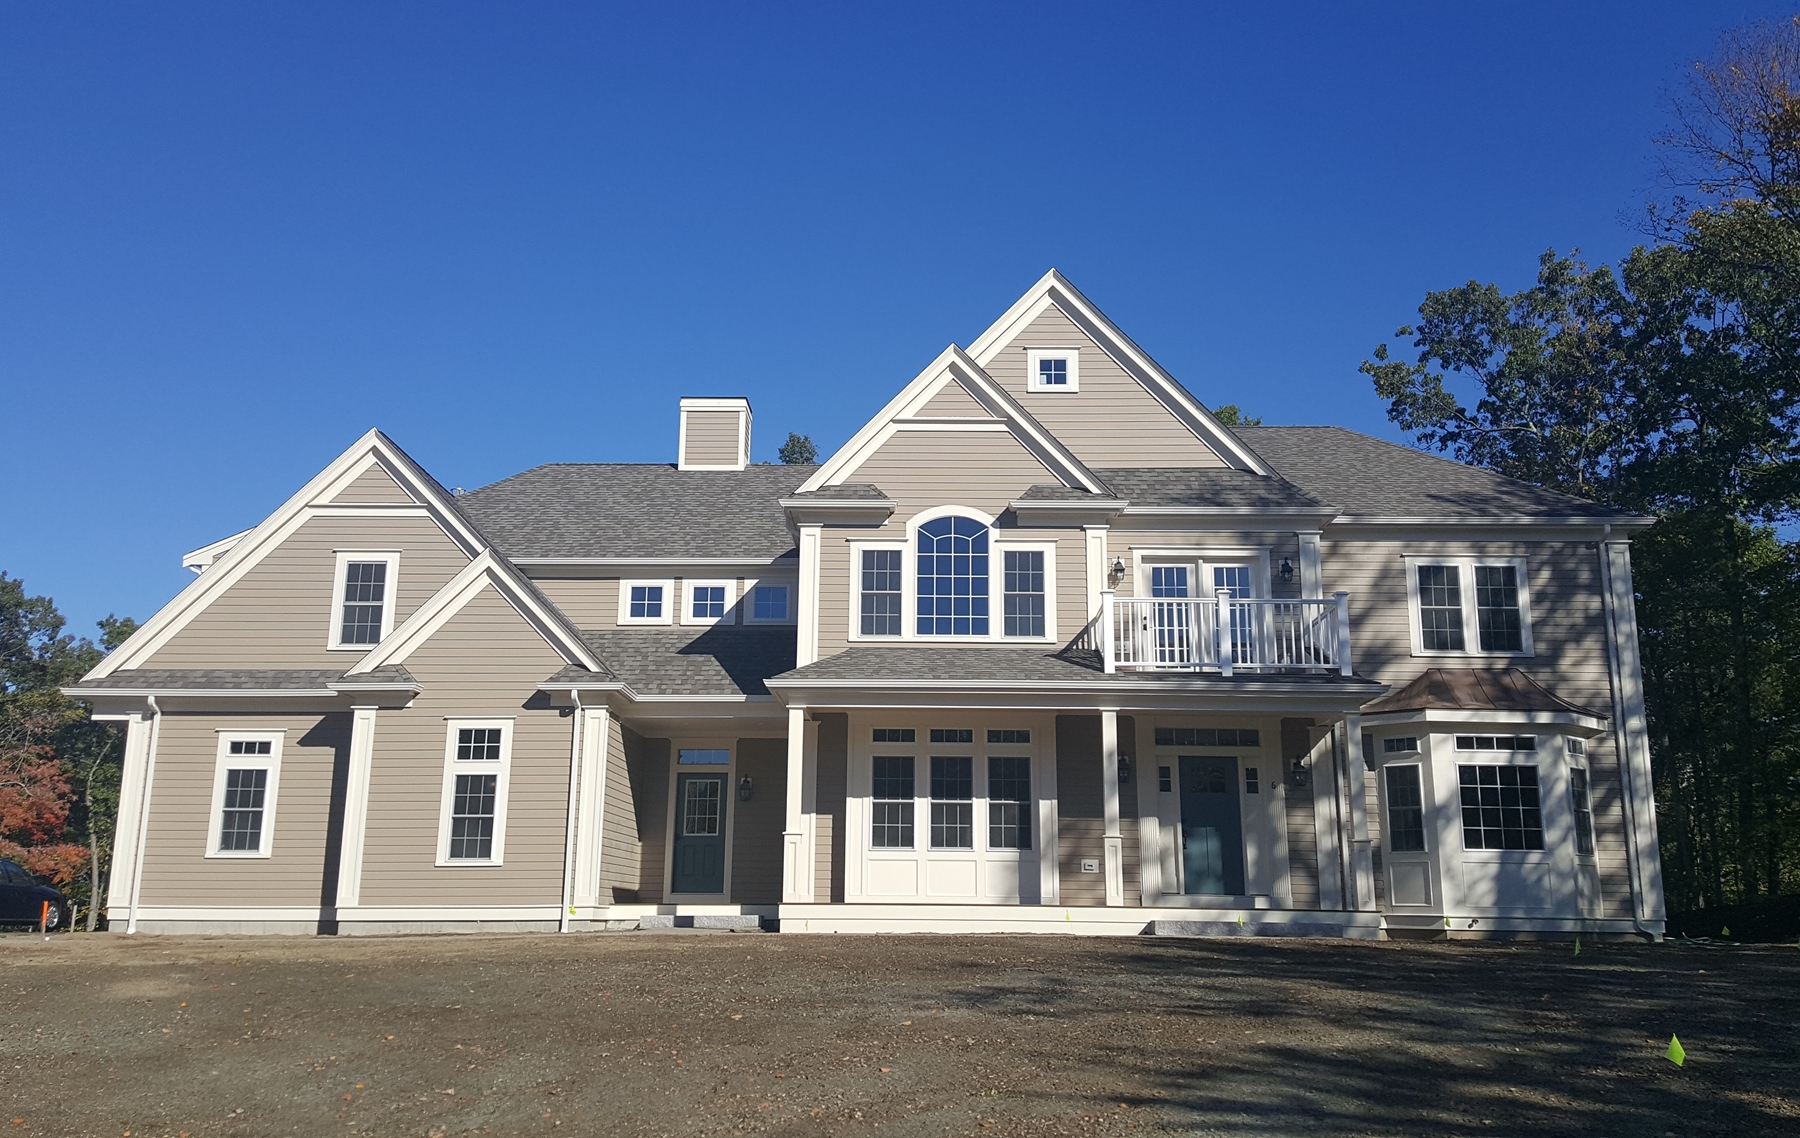 Casa Unifamiliar por un Venta en Highland Park New Home Kennedy Model Lot 6 Stoney Brook Road Hopkinton, Massachusetts 01748 Estados Unidos